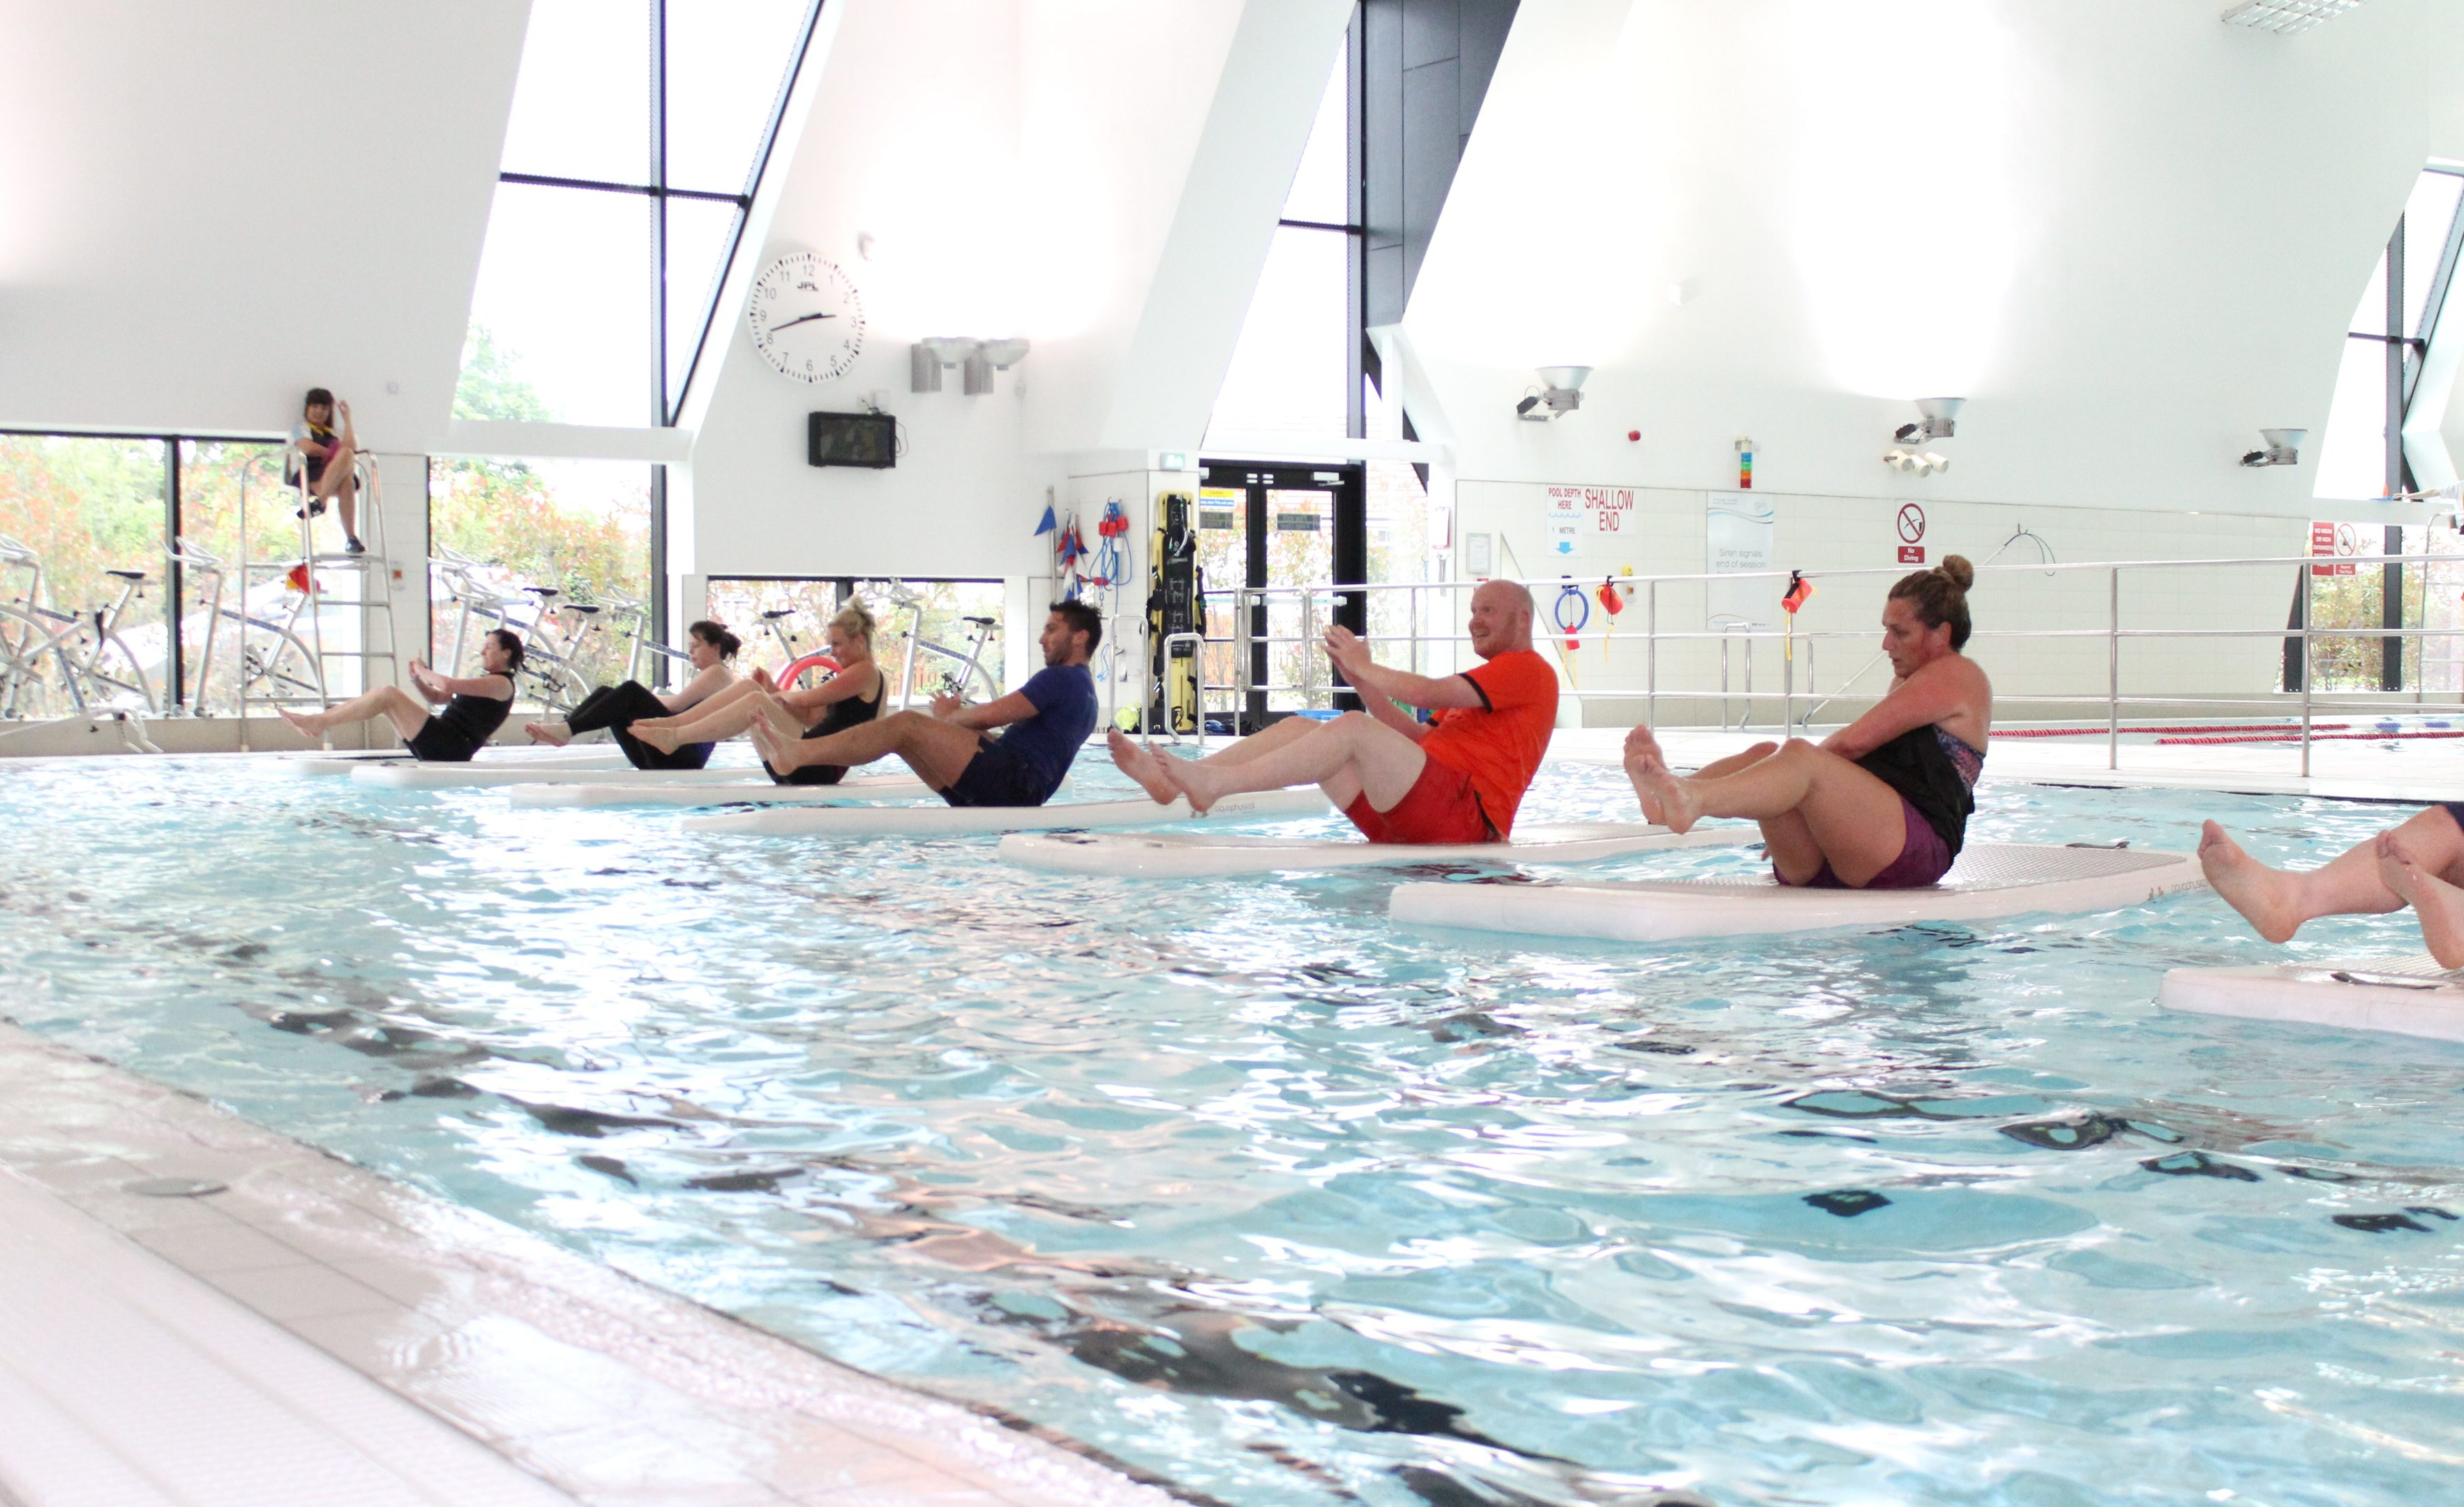 Fife Sports and Leisure Trust staff demonstrate floatfit at Michael Woods Sports and Leisure Centre in Glenrothes,